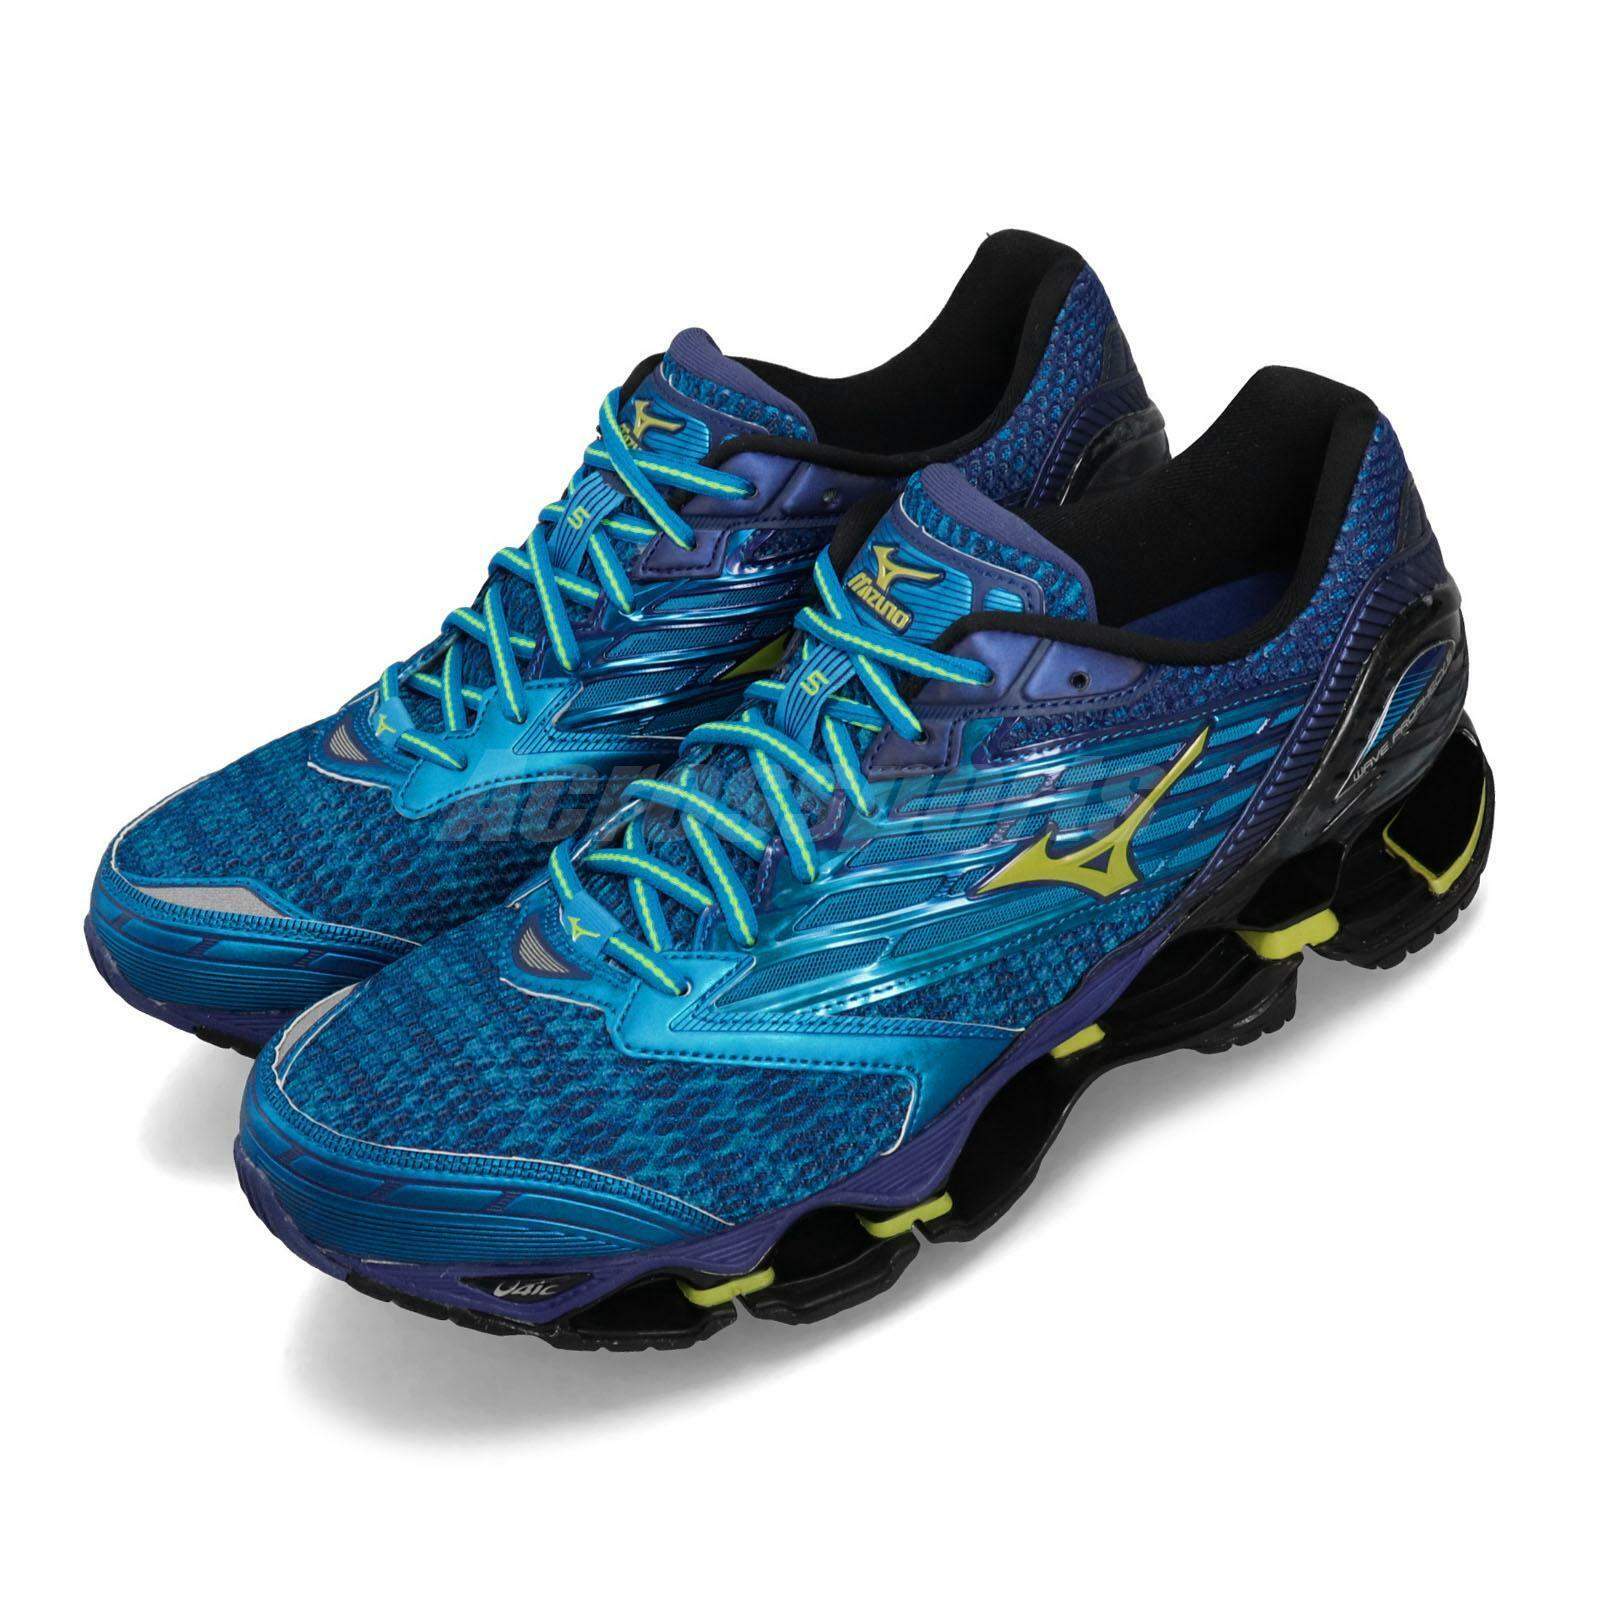 mizuno wave prophecy 2018 jordan blanco